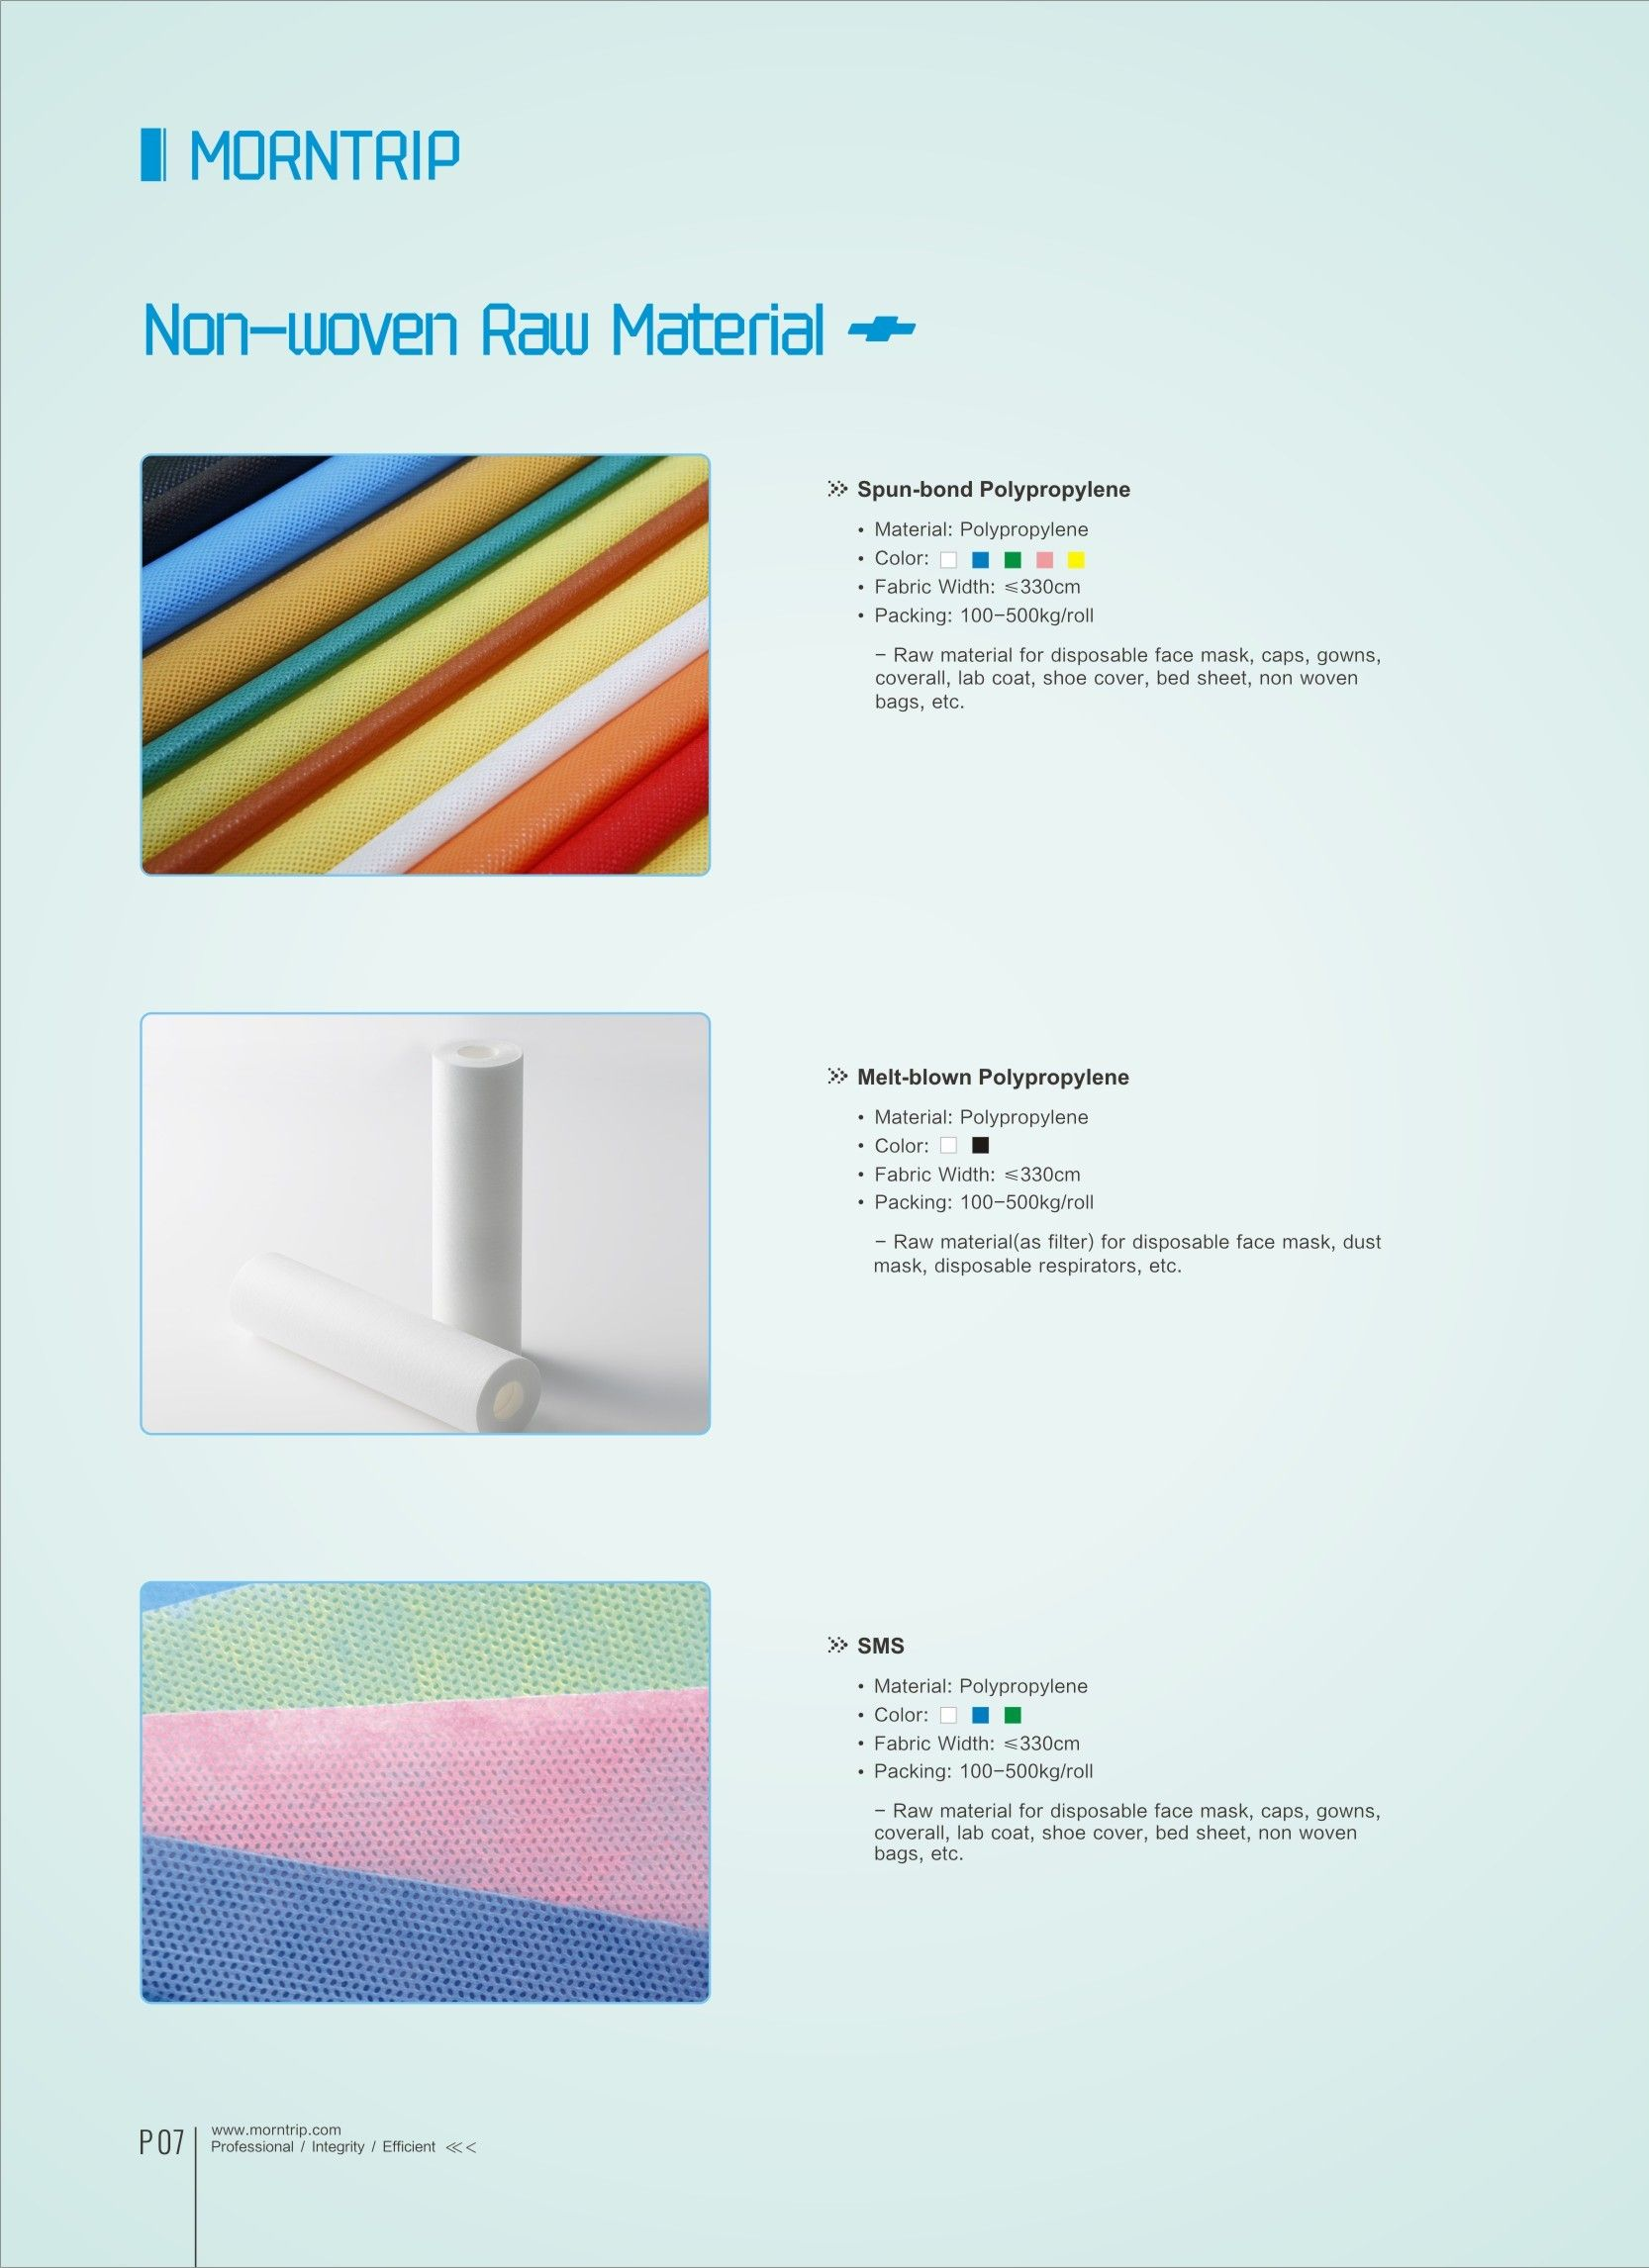 Catalog Page 7 Besides Finished Nonwoven Products We Also